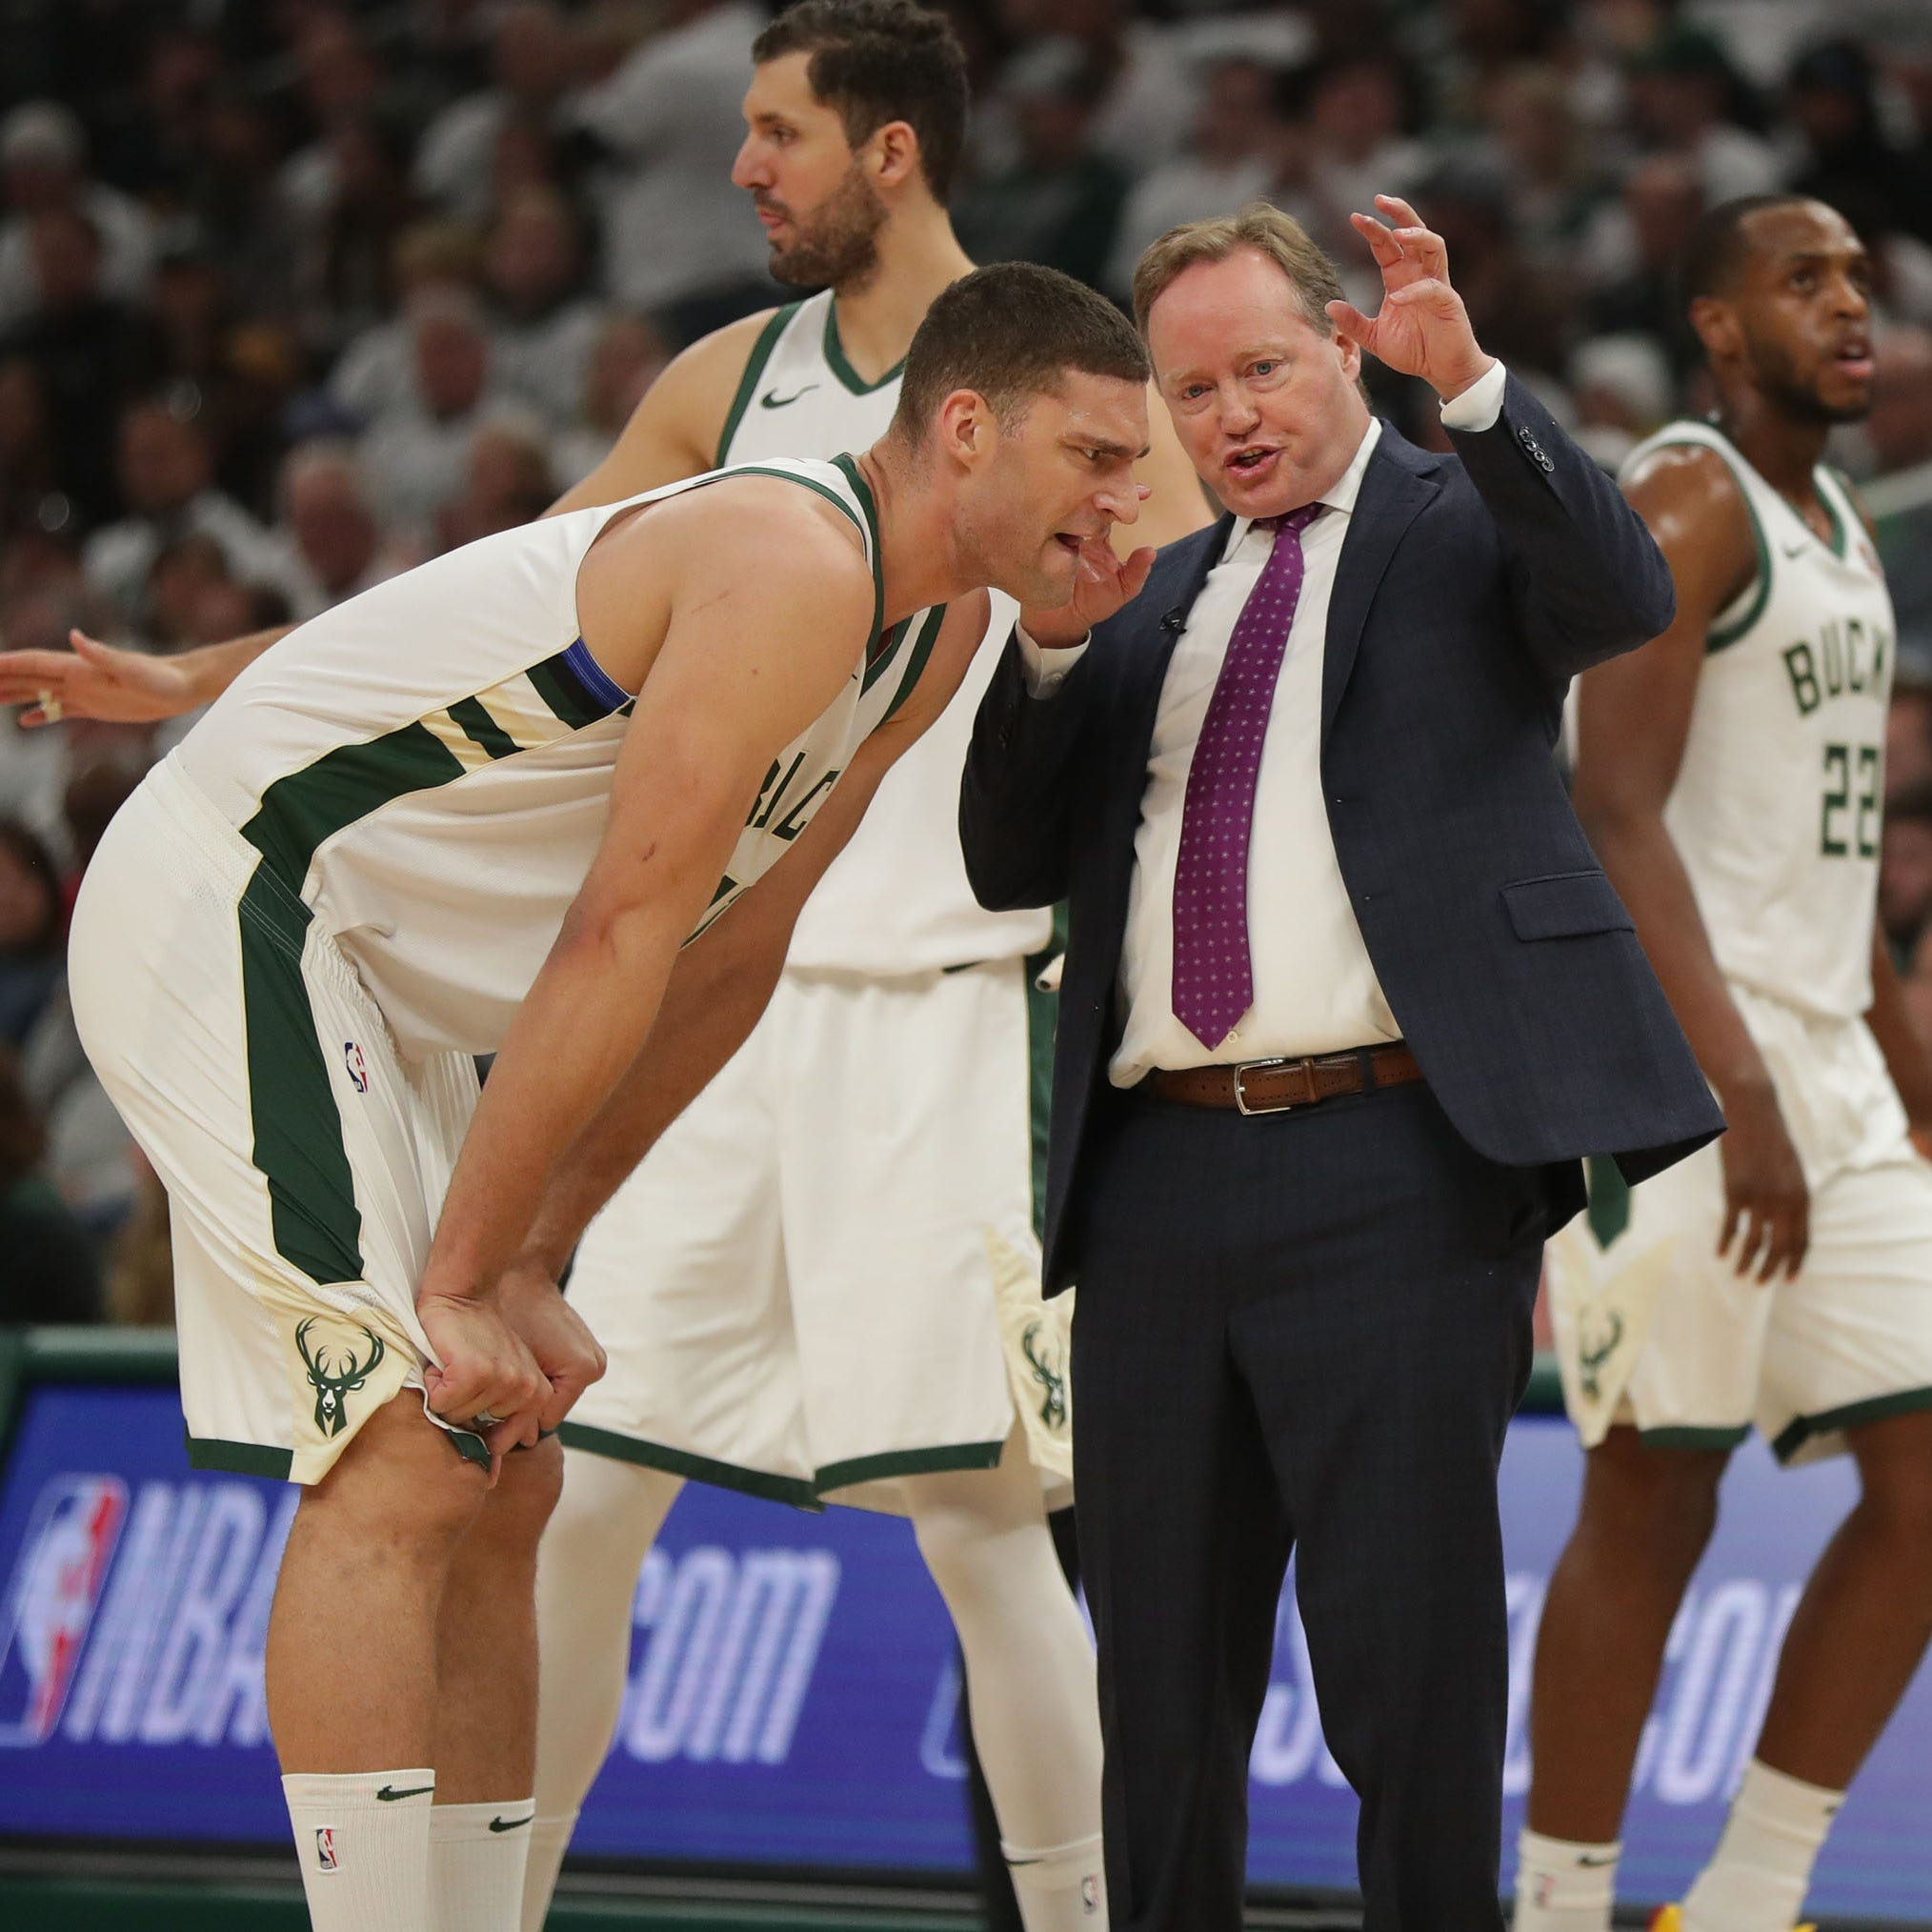 Managing minutes kept the Bucks from running out of gas in fourth quarter against Toronto